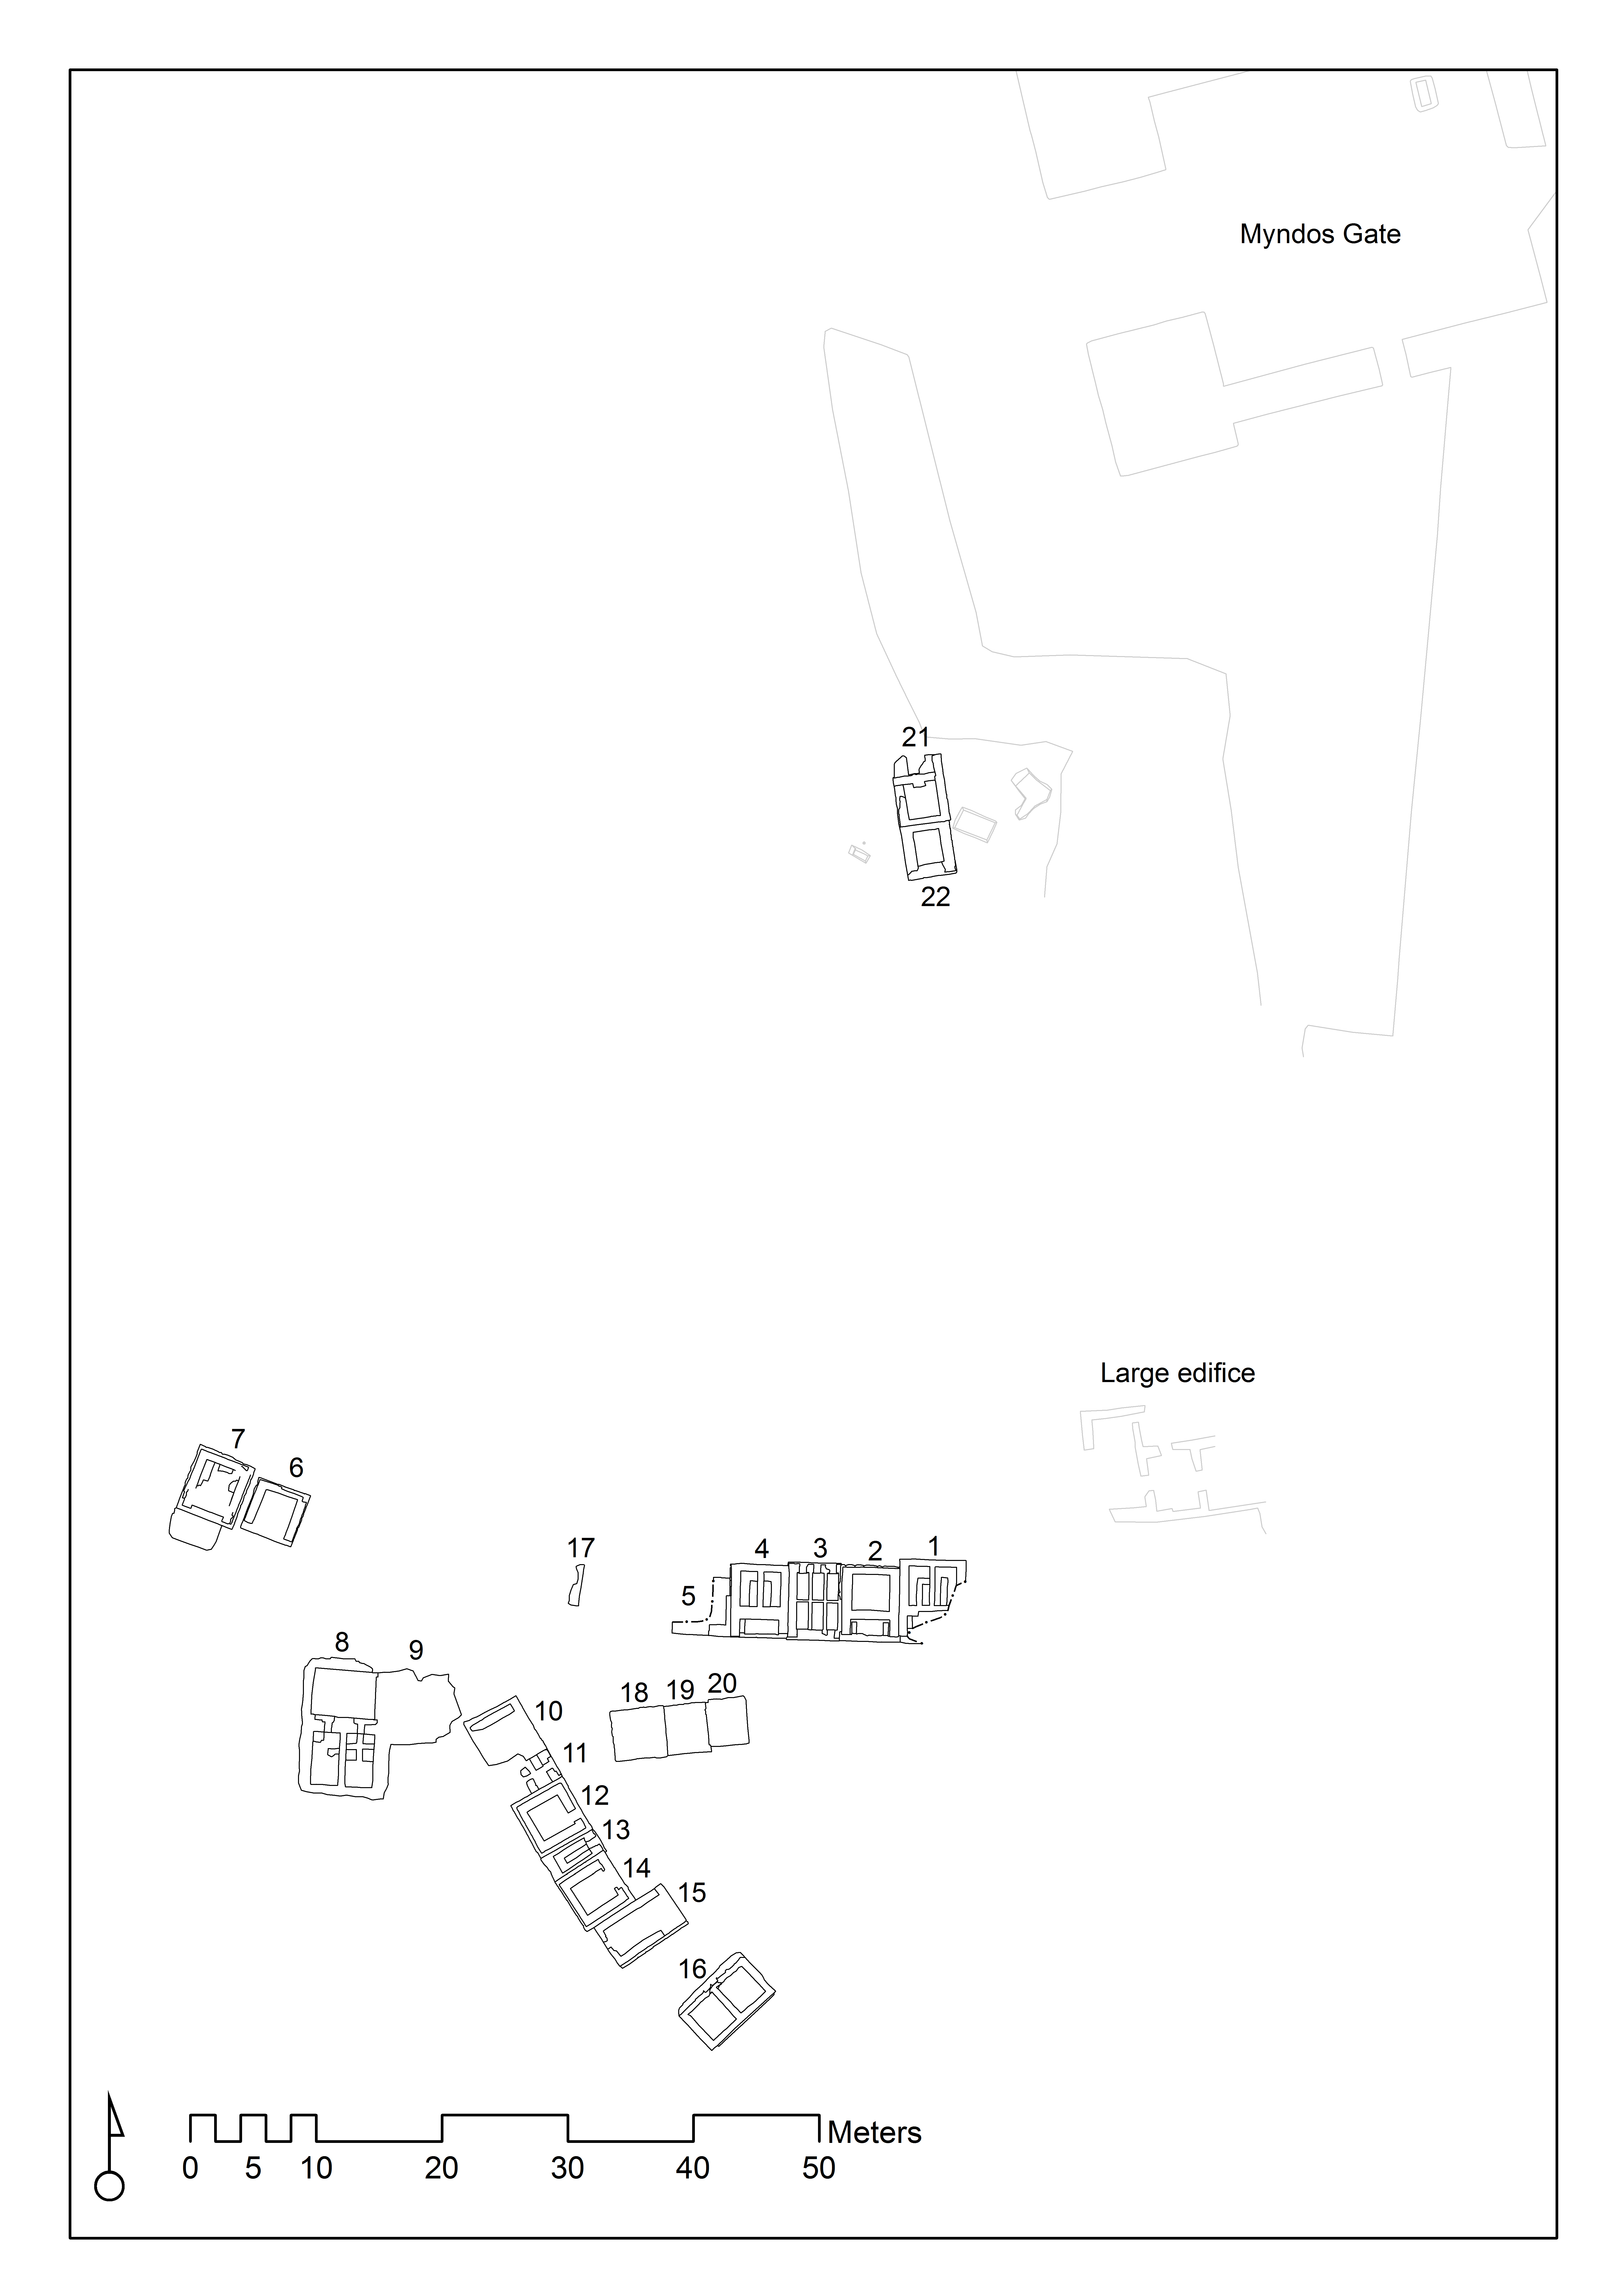 Fig. 2. Plan necropolis (N. Bargfeldt & E. Mortensen)